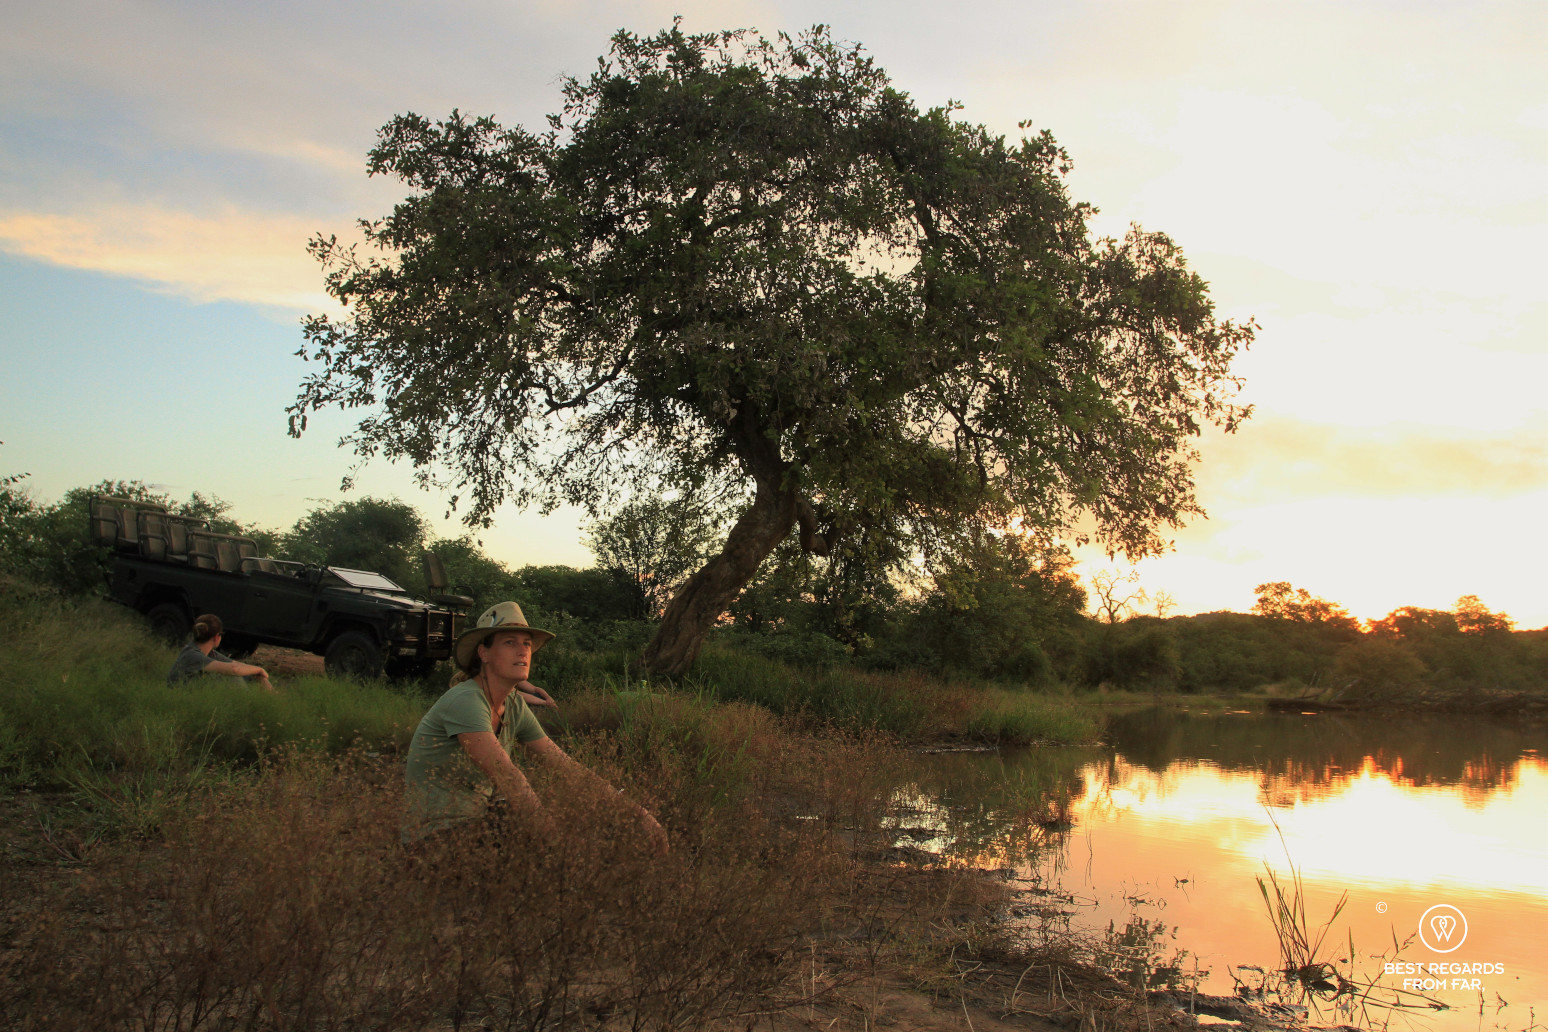 Safari-goer seated by a pond for sunset in the African bush